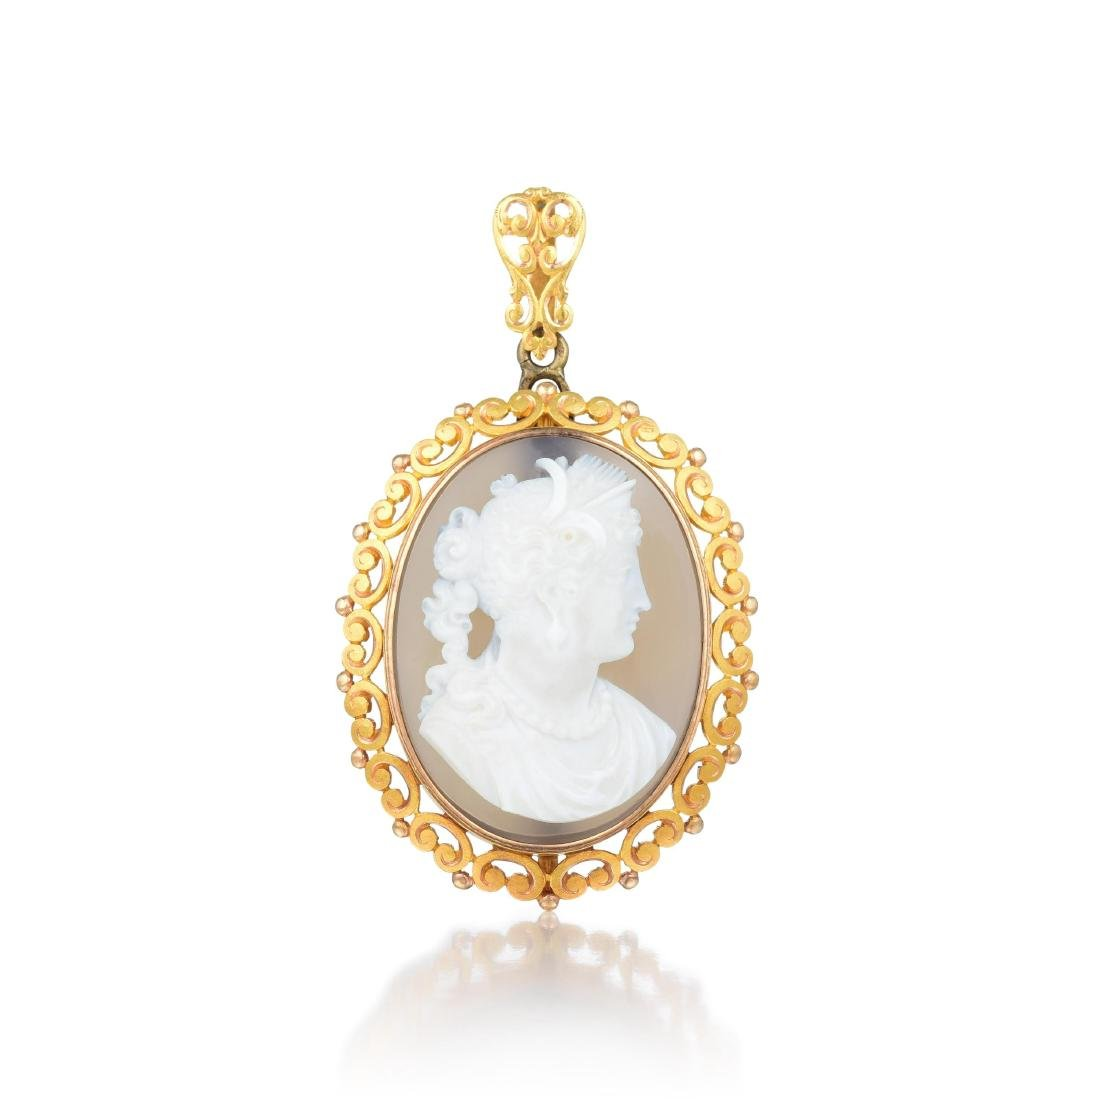 A Suite of 18K Gold and Hardstone Victorian Cameo - 3